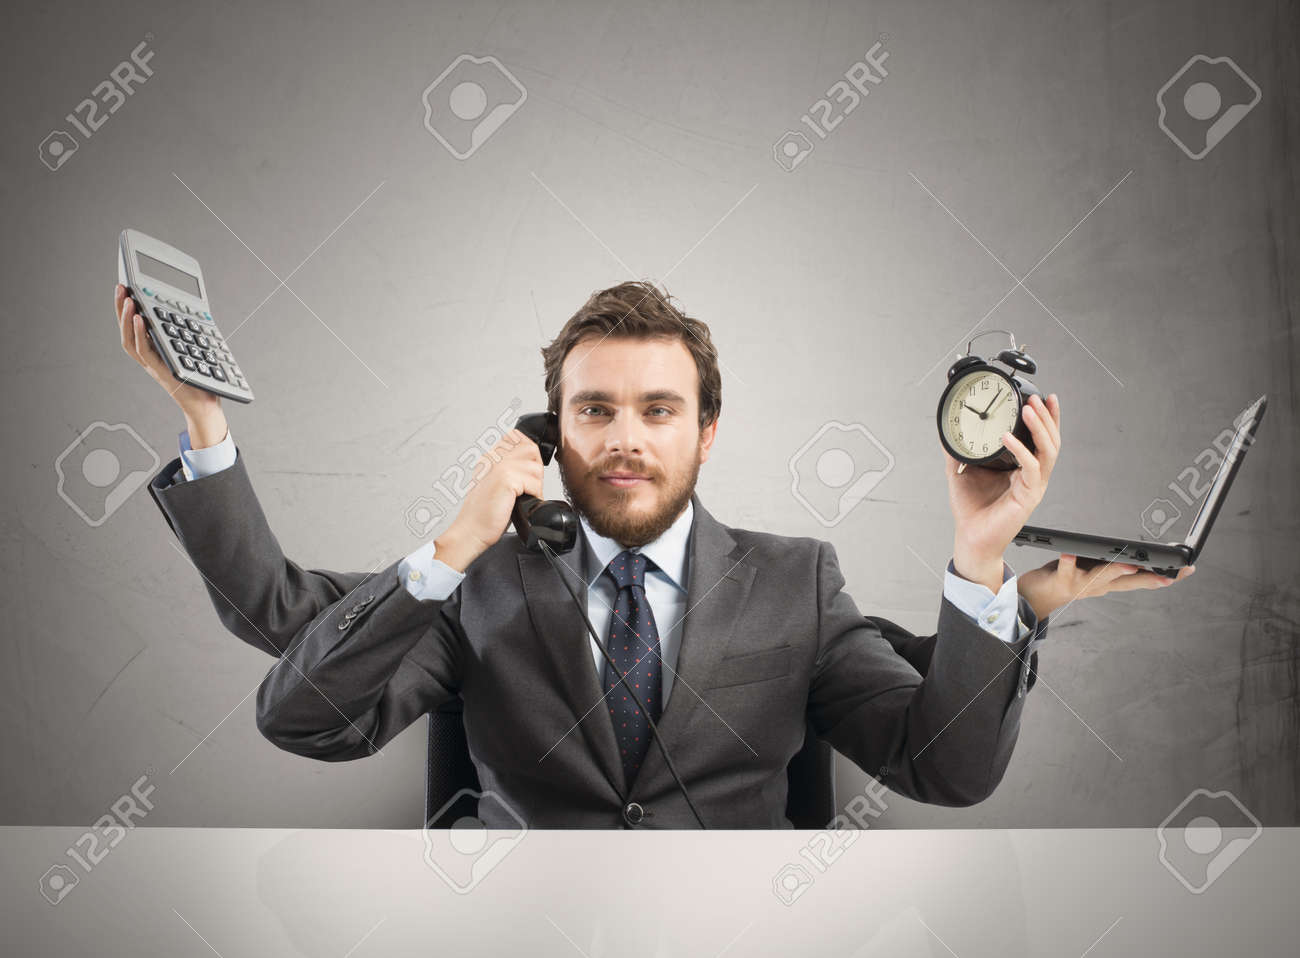 Concept of multitasking businessman who works with more arms - 22935934